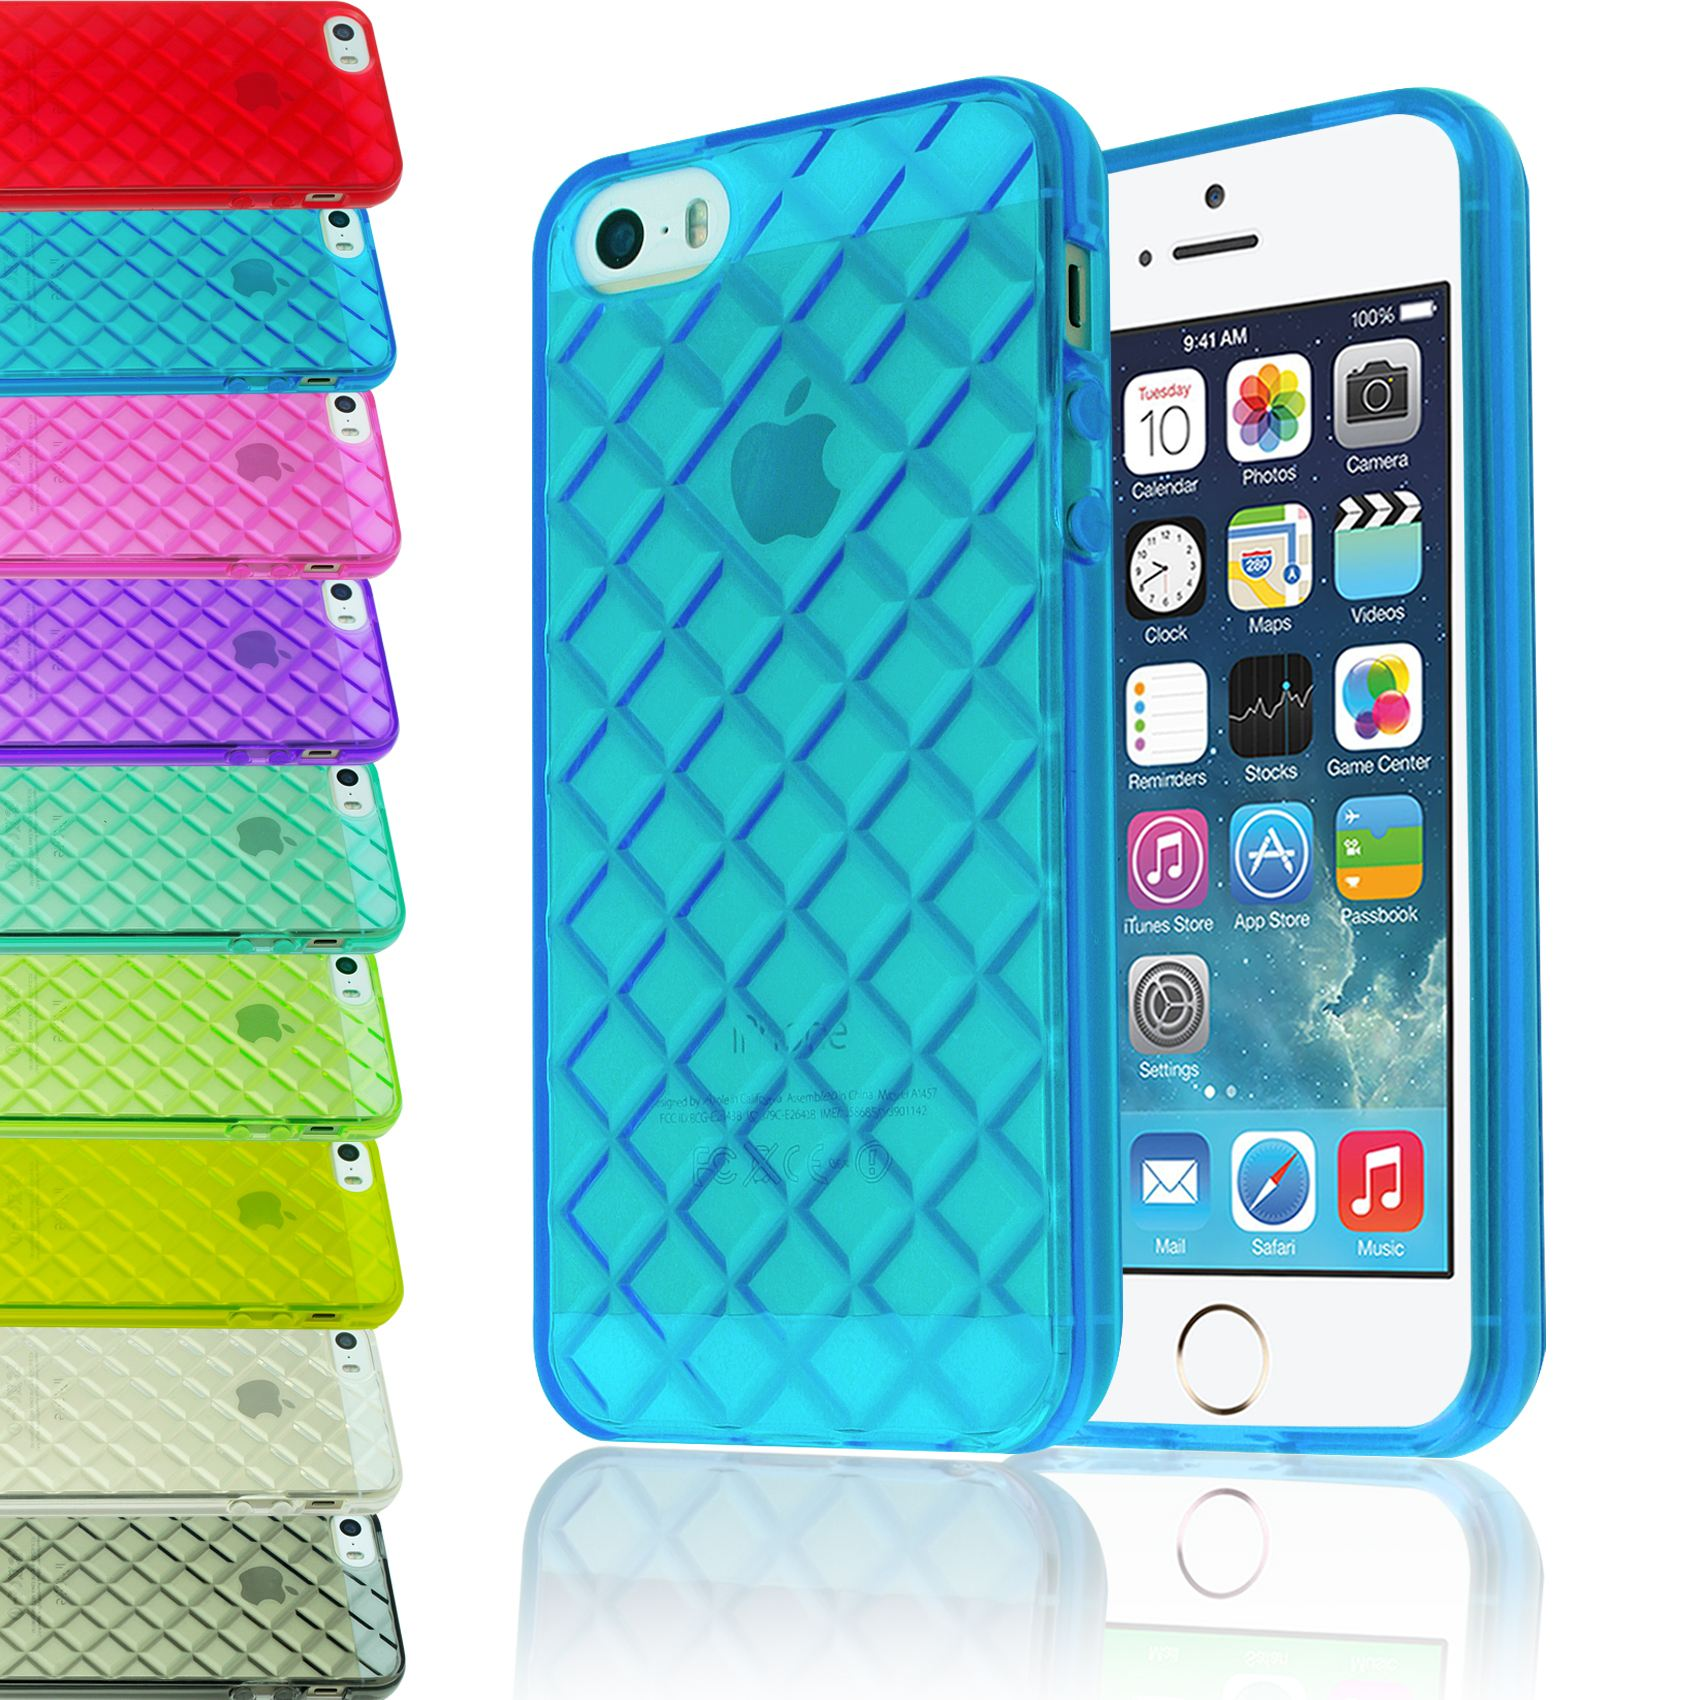 Transparent Diamond Rhomb Tpu Gel Clear Soft Back Case Cover For 1 Iphone 5